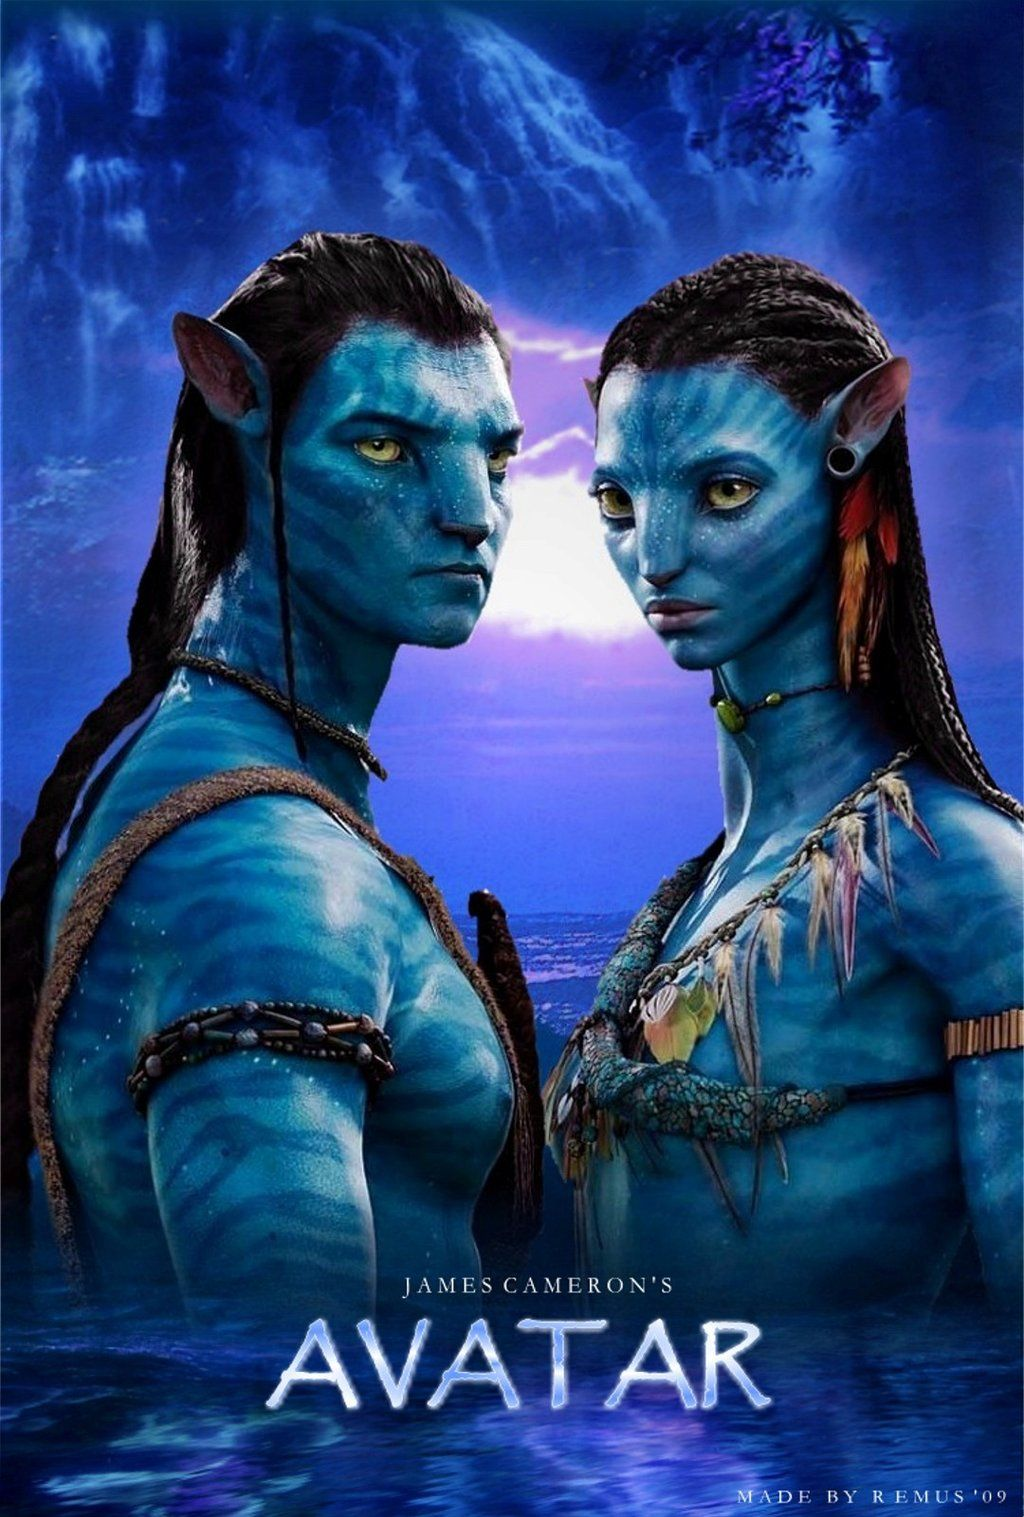 What is the movie Avatar